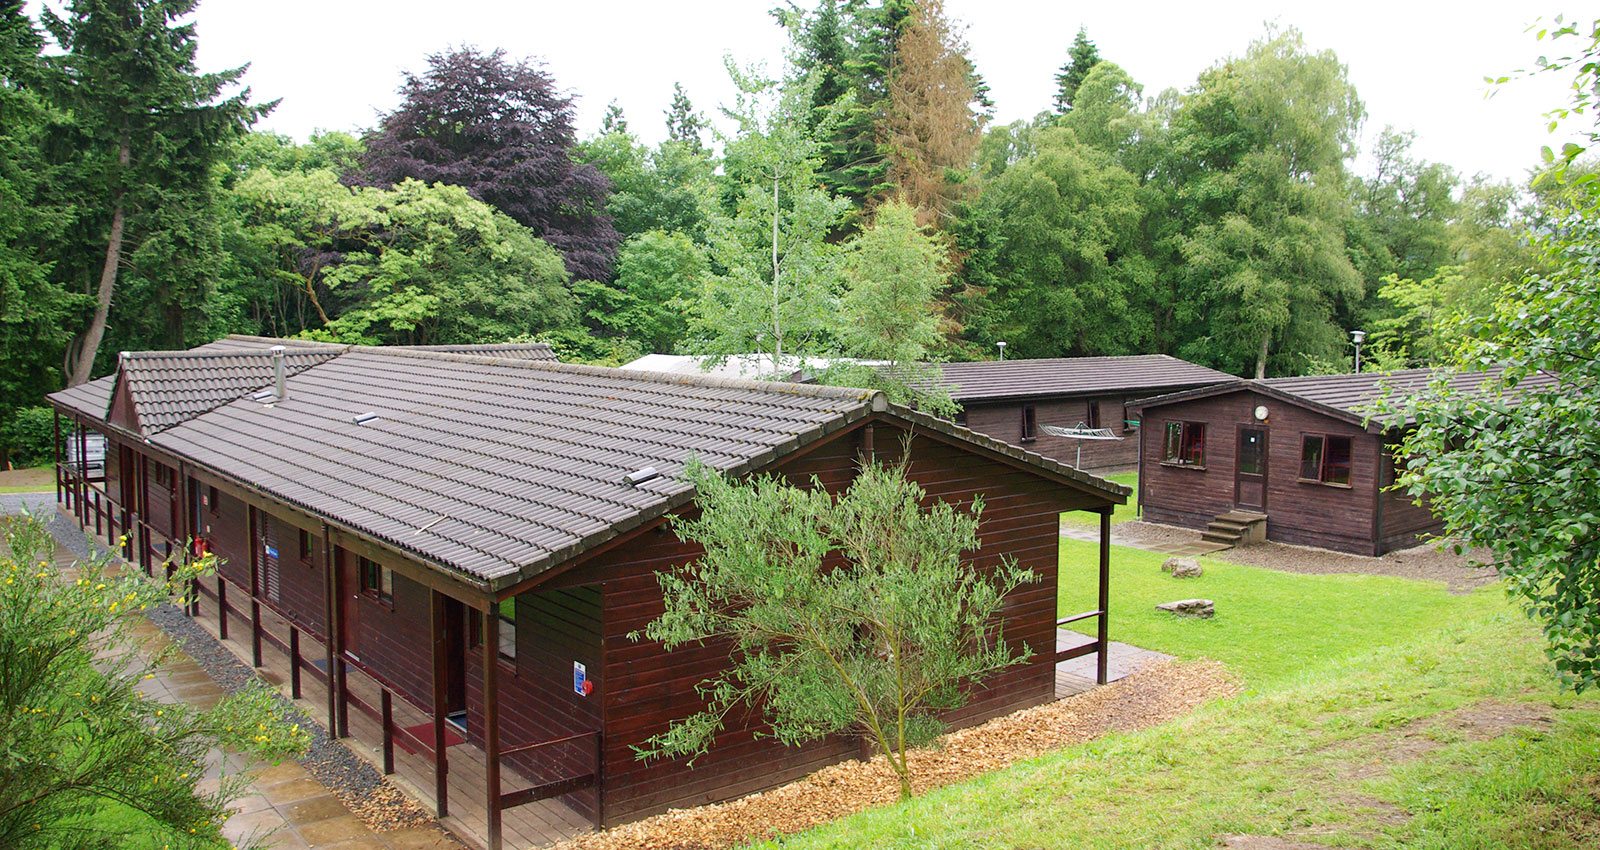 Youth Group Residential Centres